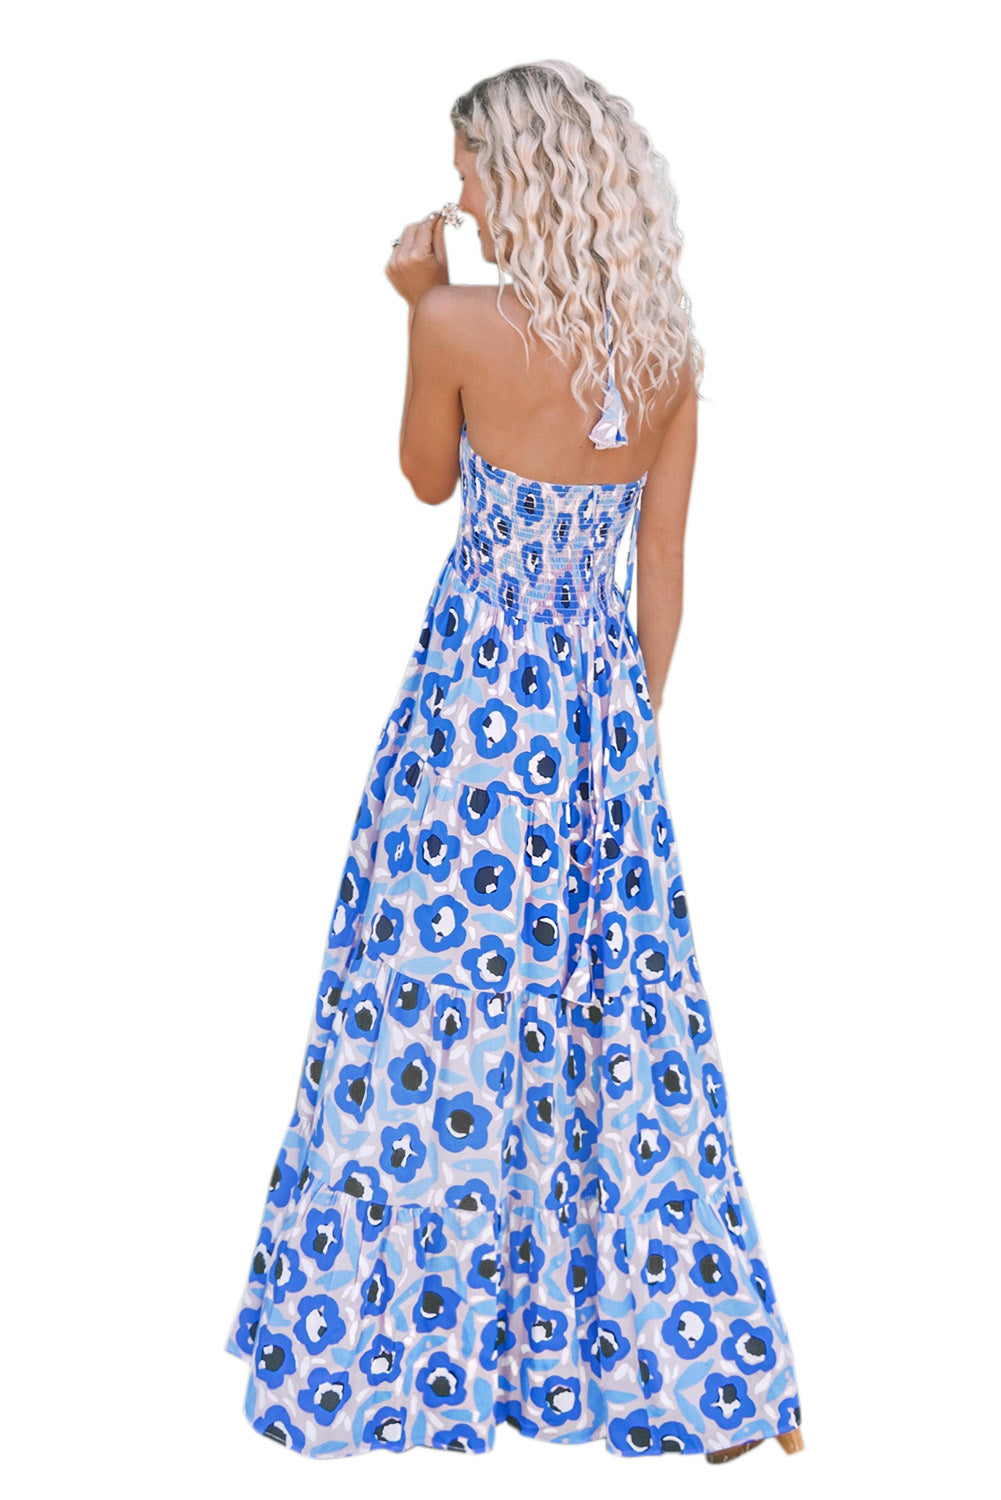 Sky Blue Summer Bohemian Printed Holiday Maxi Dress